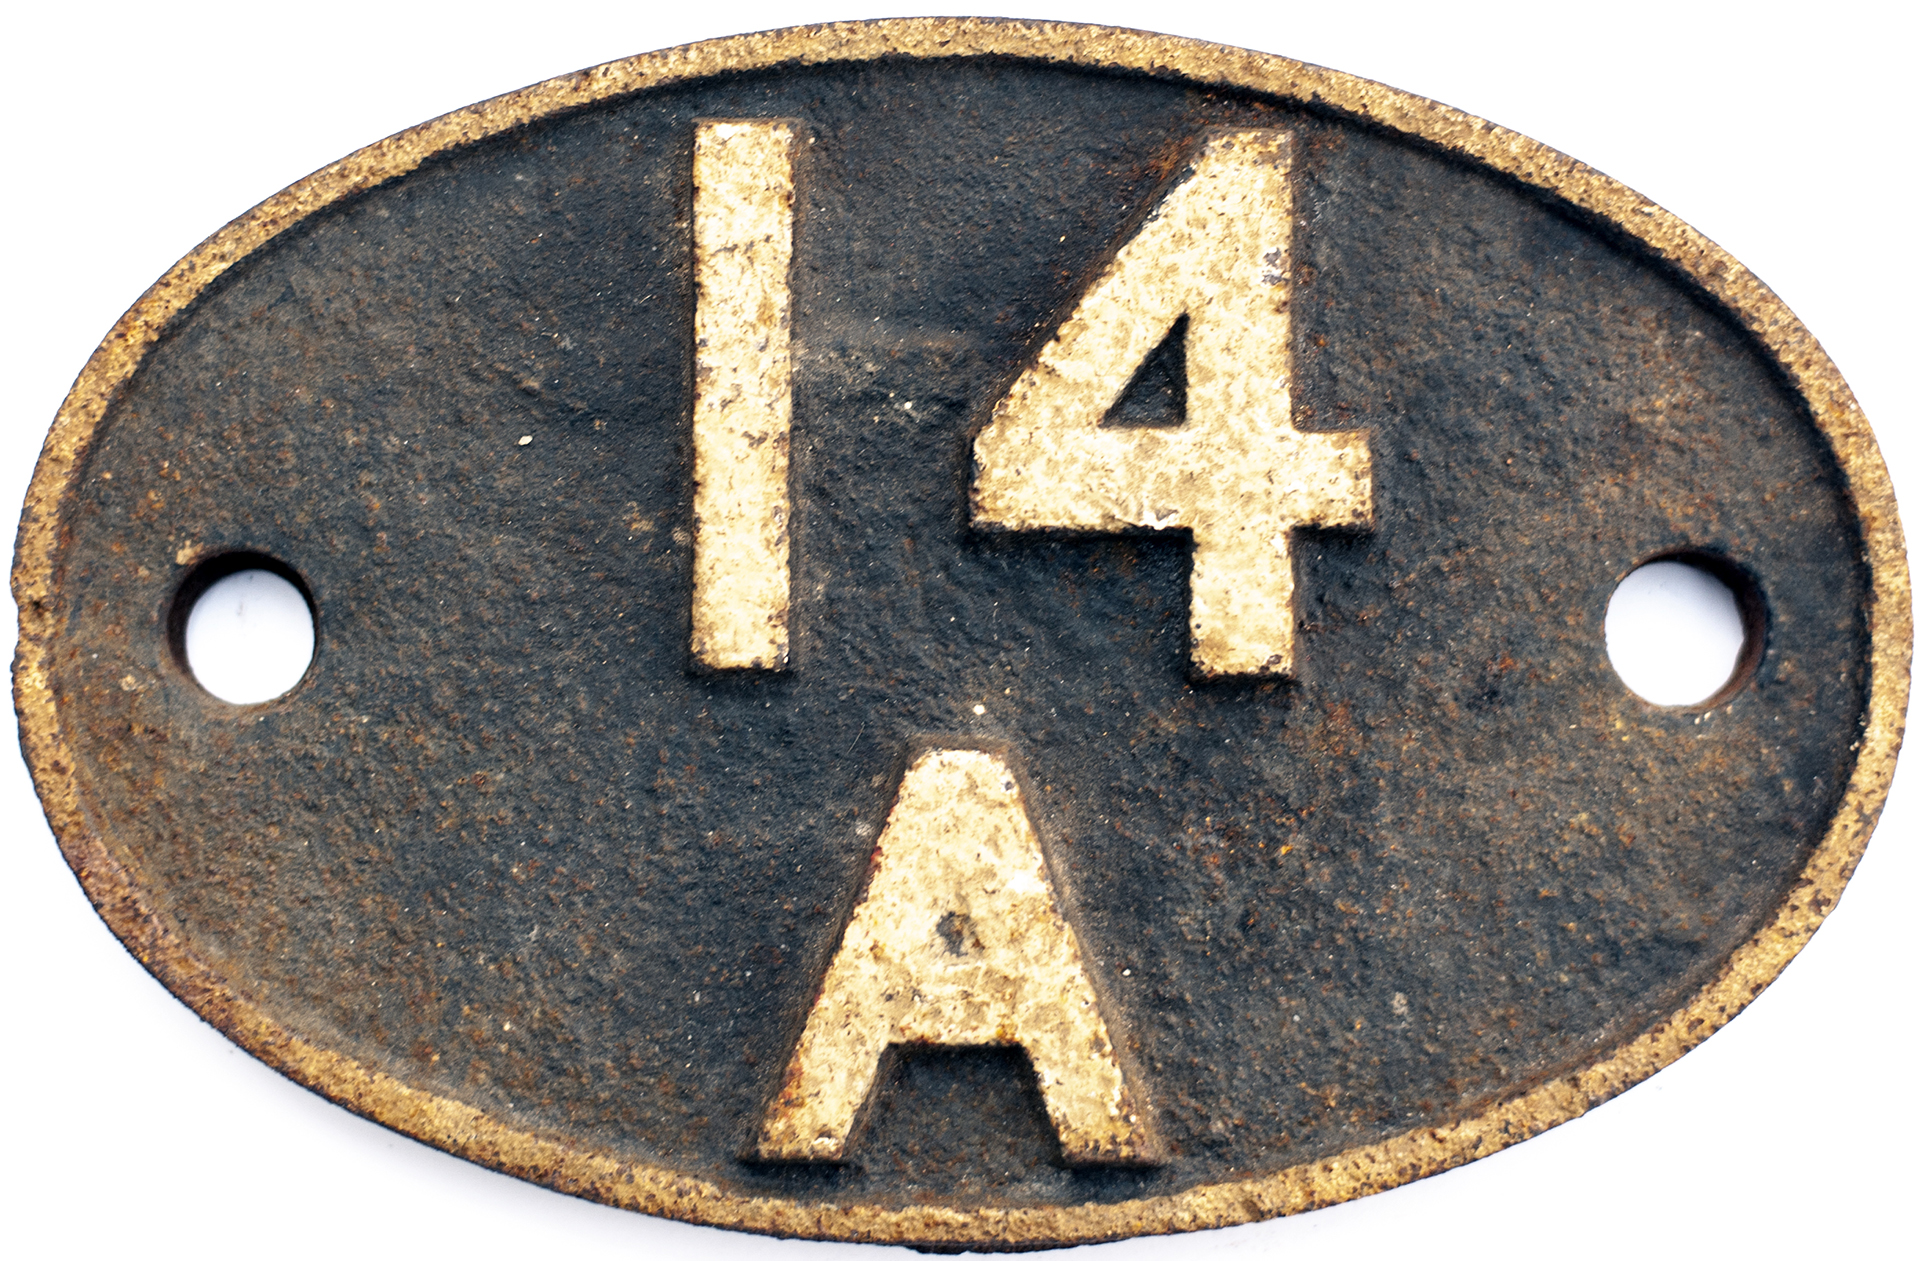 Shedplate 14A Cricklewood 1950 - 1963. In as removed condition with clear Derby casting bars.